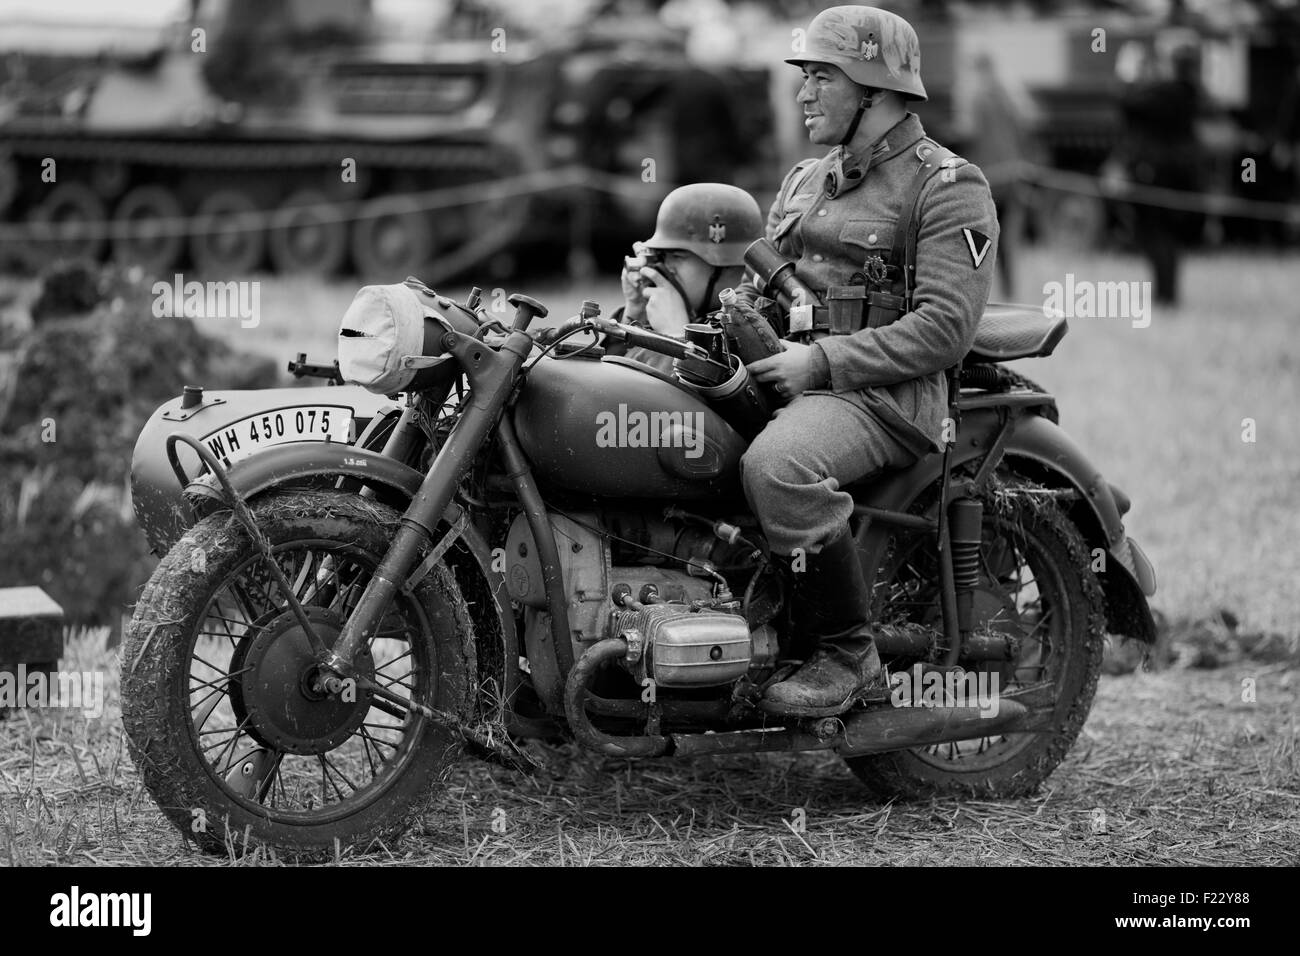 World war 11 German soldiers on A BMW Motorcycle with sidecar  on the Battlefield - Stock Image